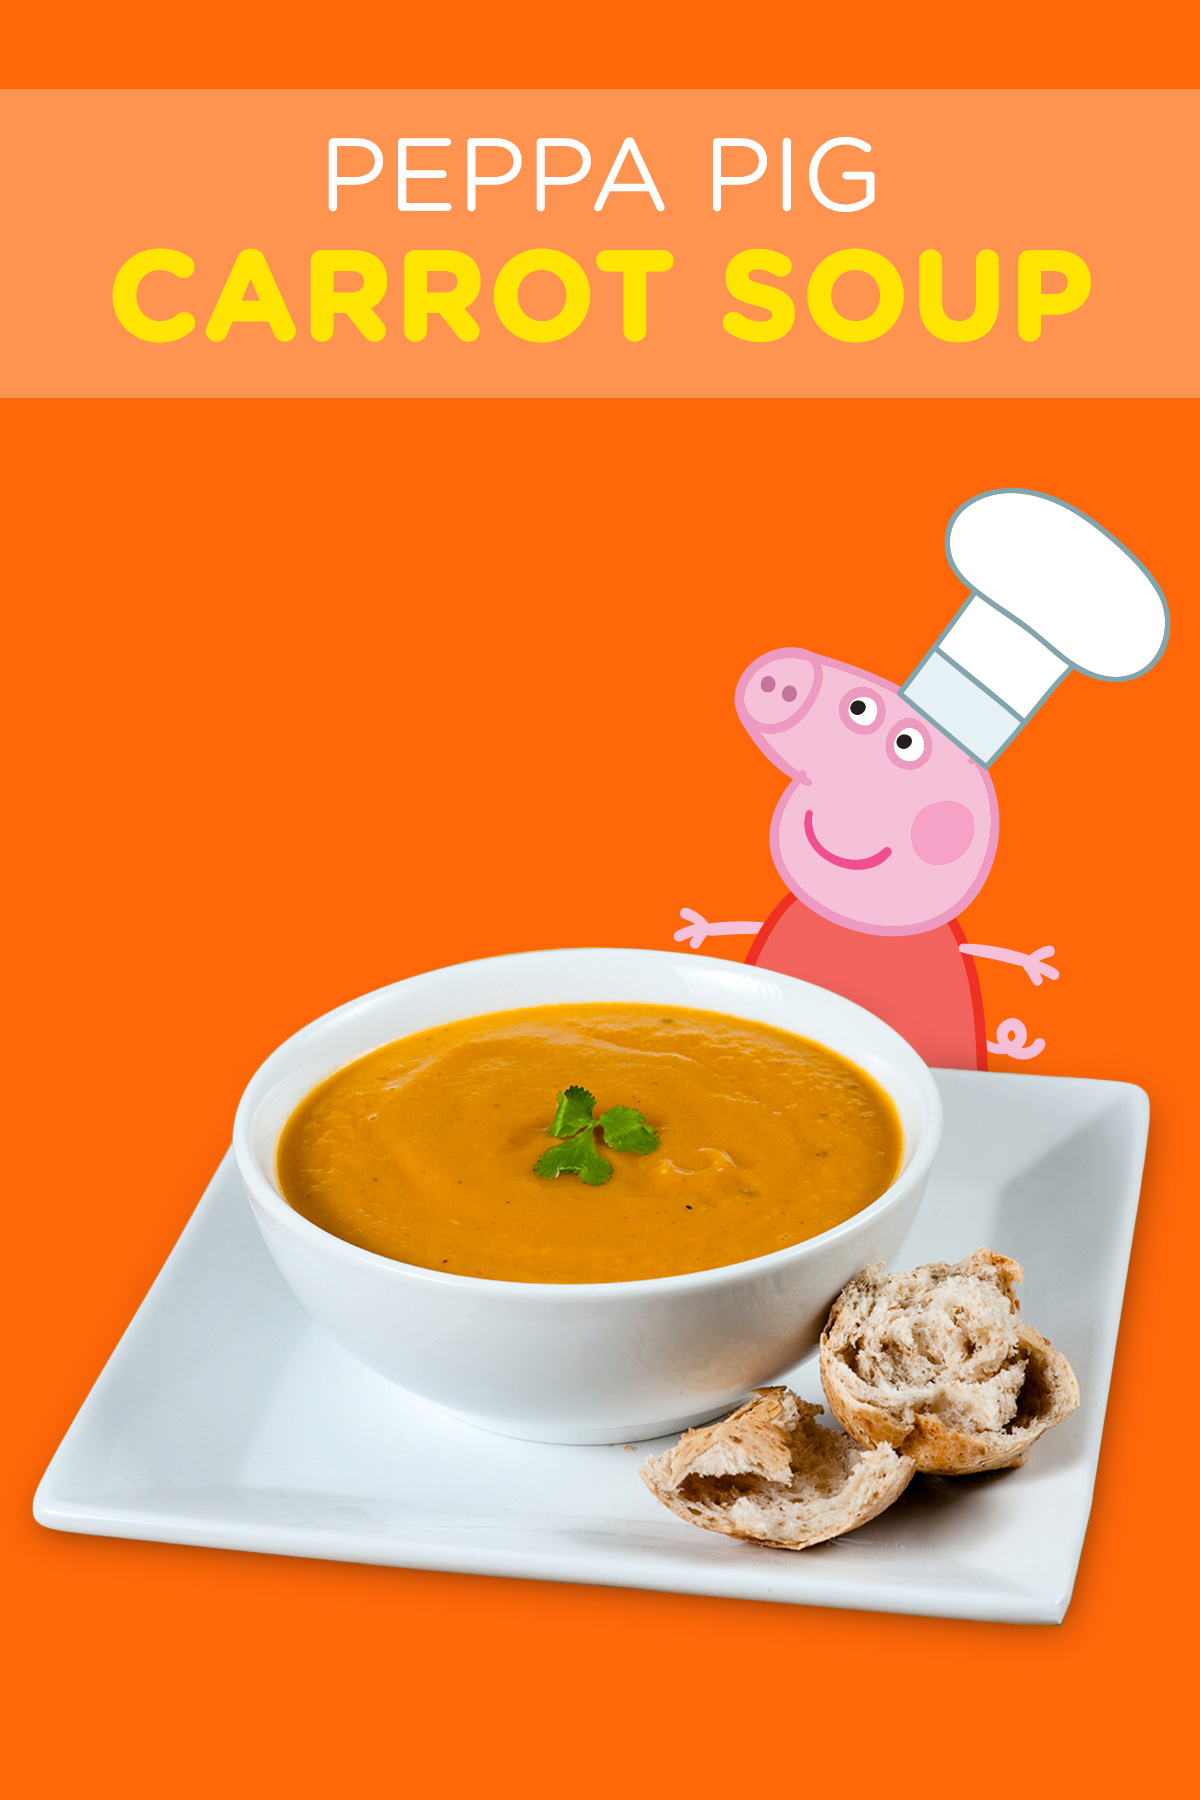 Cuisine Peppa Pig Peppa Pig Carrot Soup Recipe Nickelodeon Parents